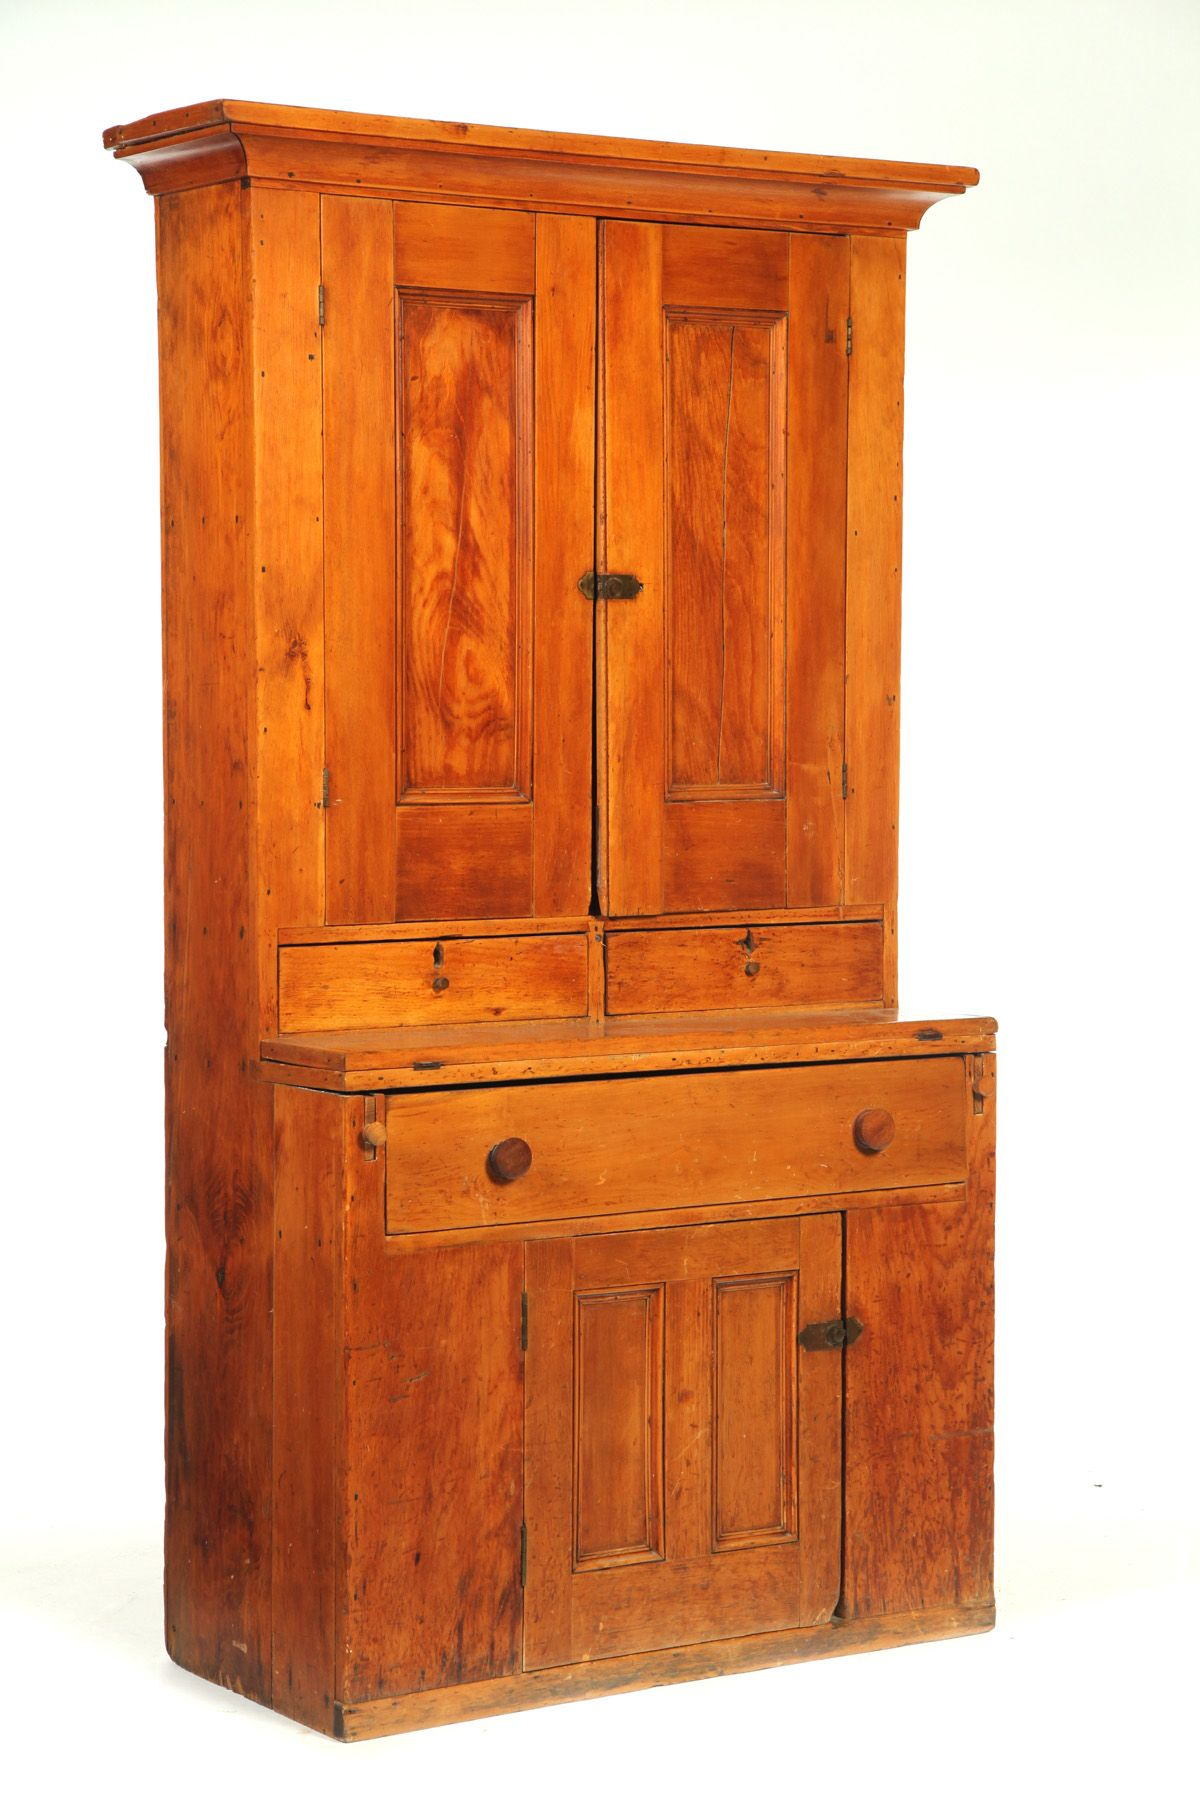 Country Secretary American 19th Century Pine One Piece The Upper Section With Paneled Doors And Primitive Furniture Period Furniture Primitive Decorating